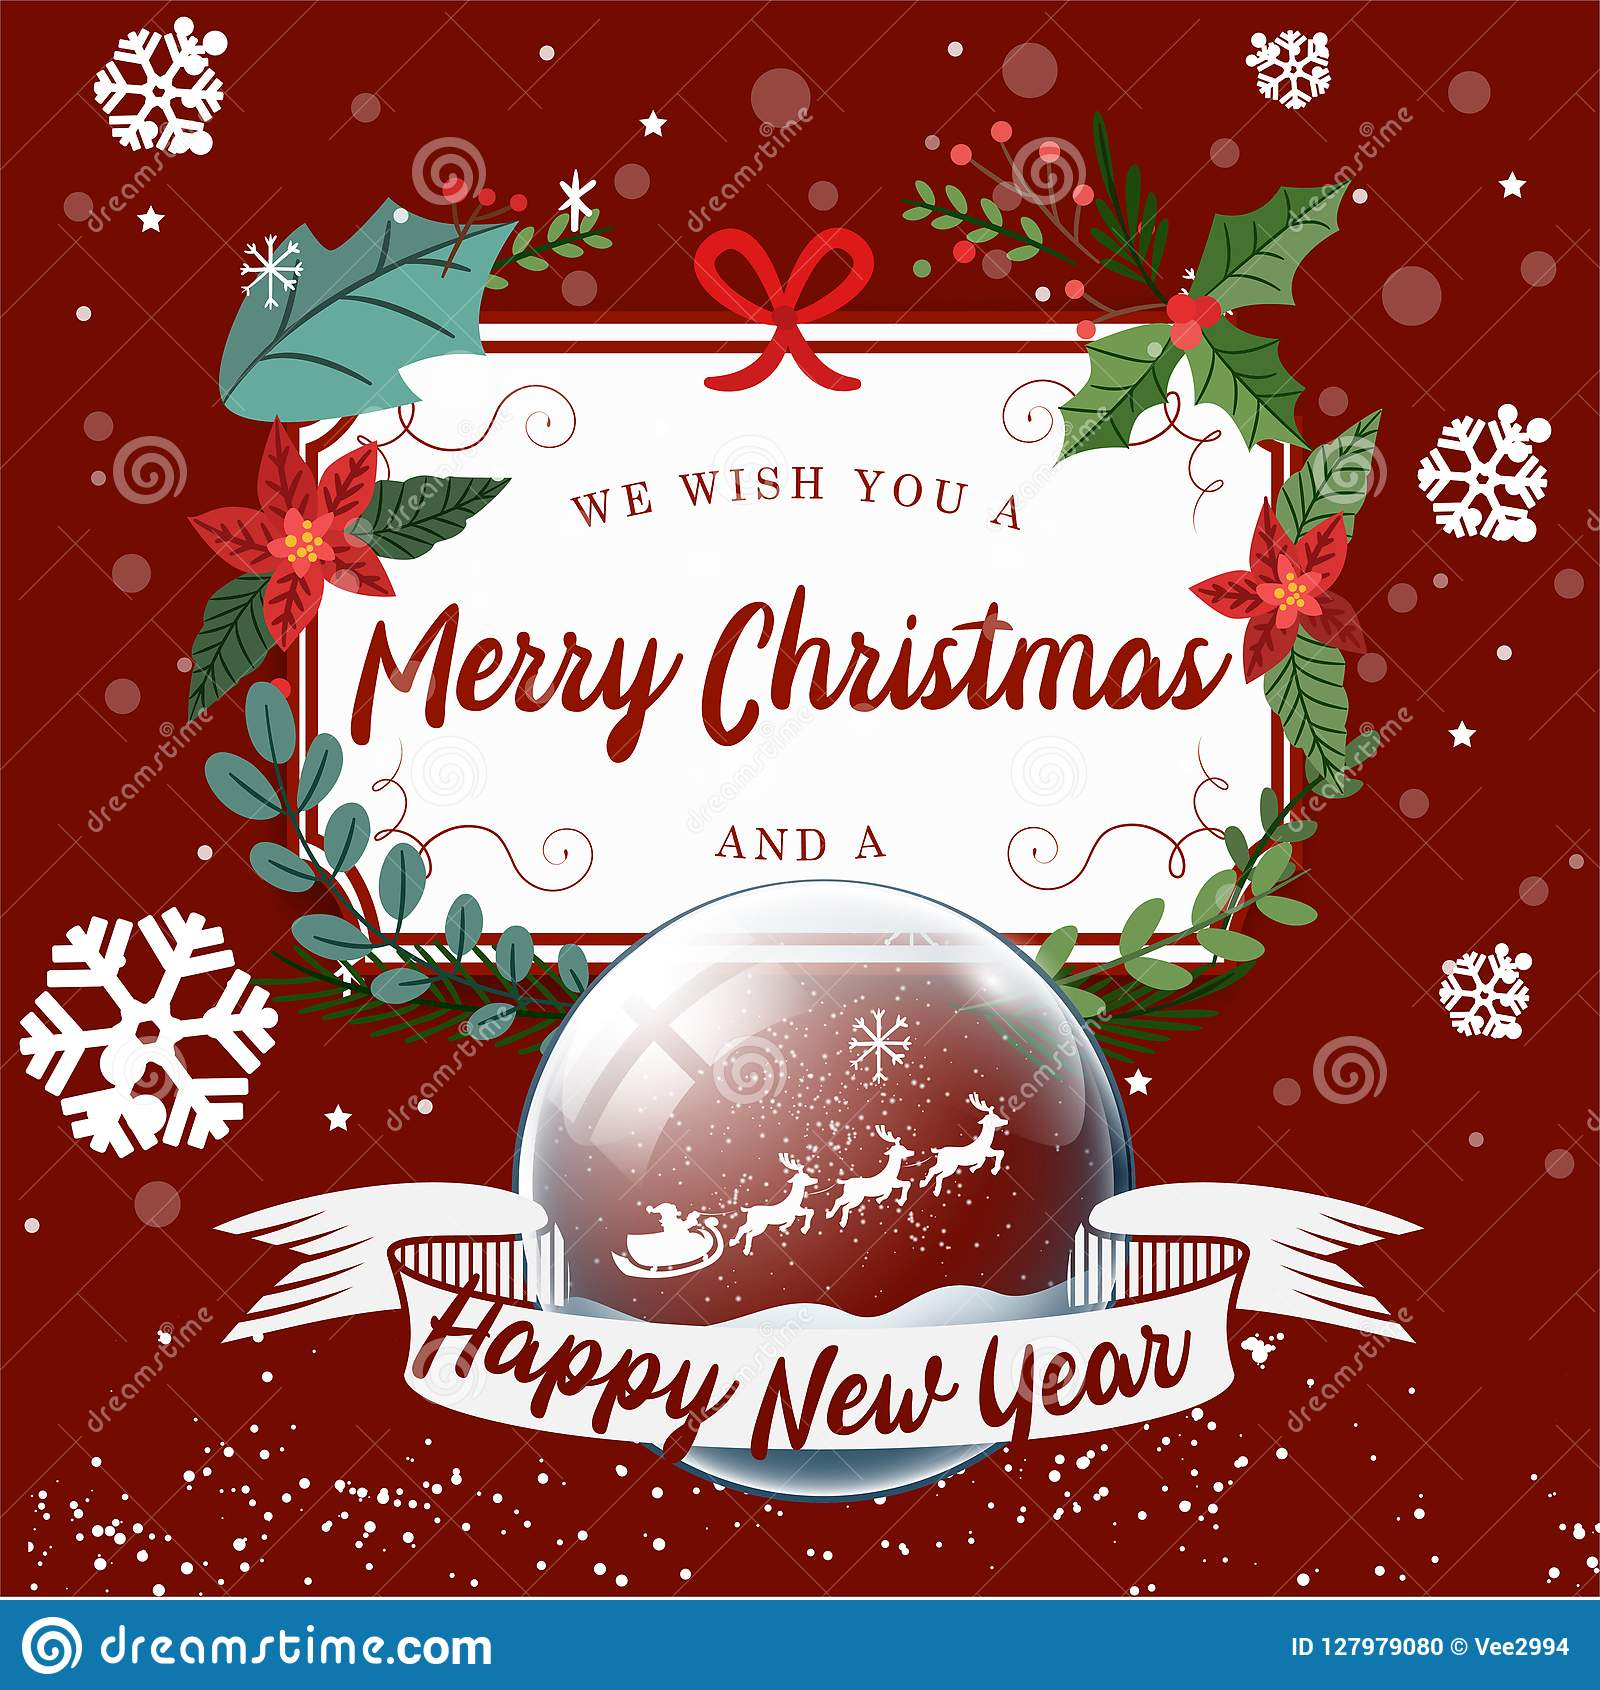 Merry Christmas and Happy New Year background, Tree rex and gift